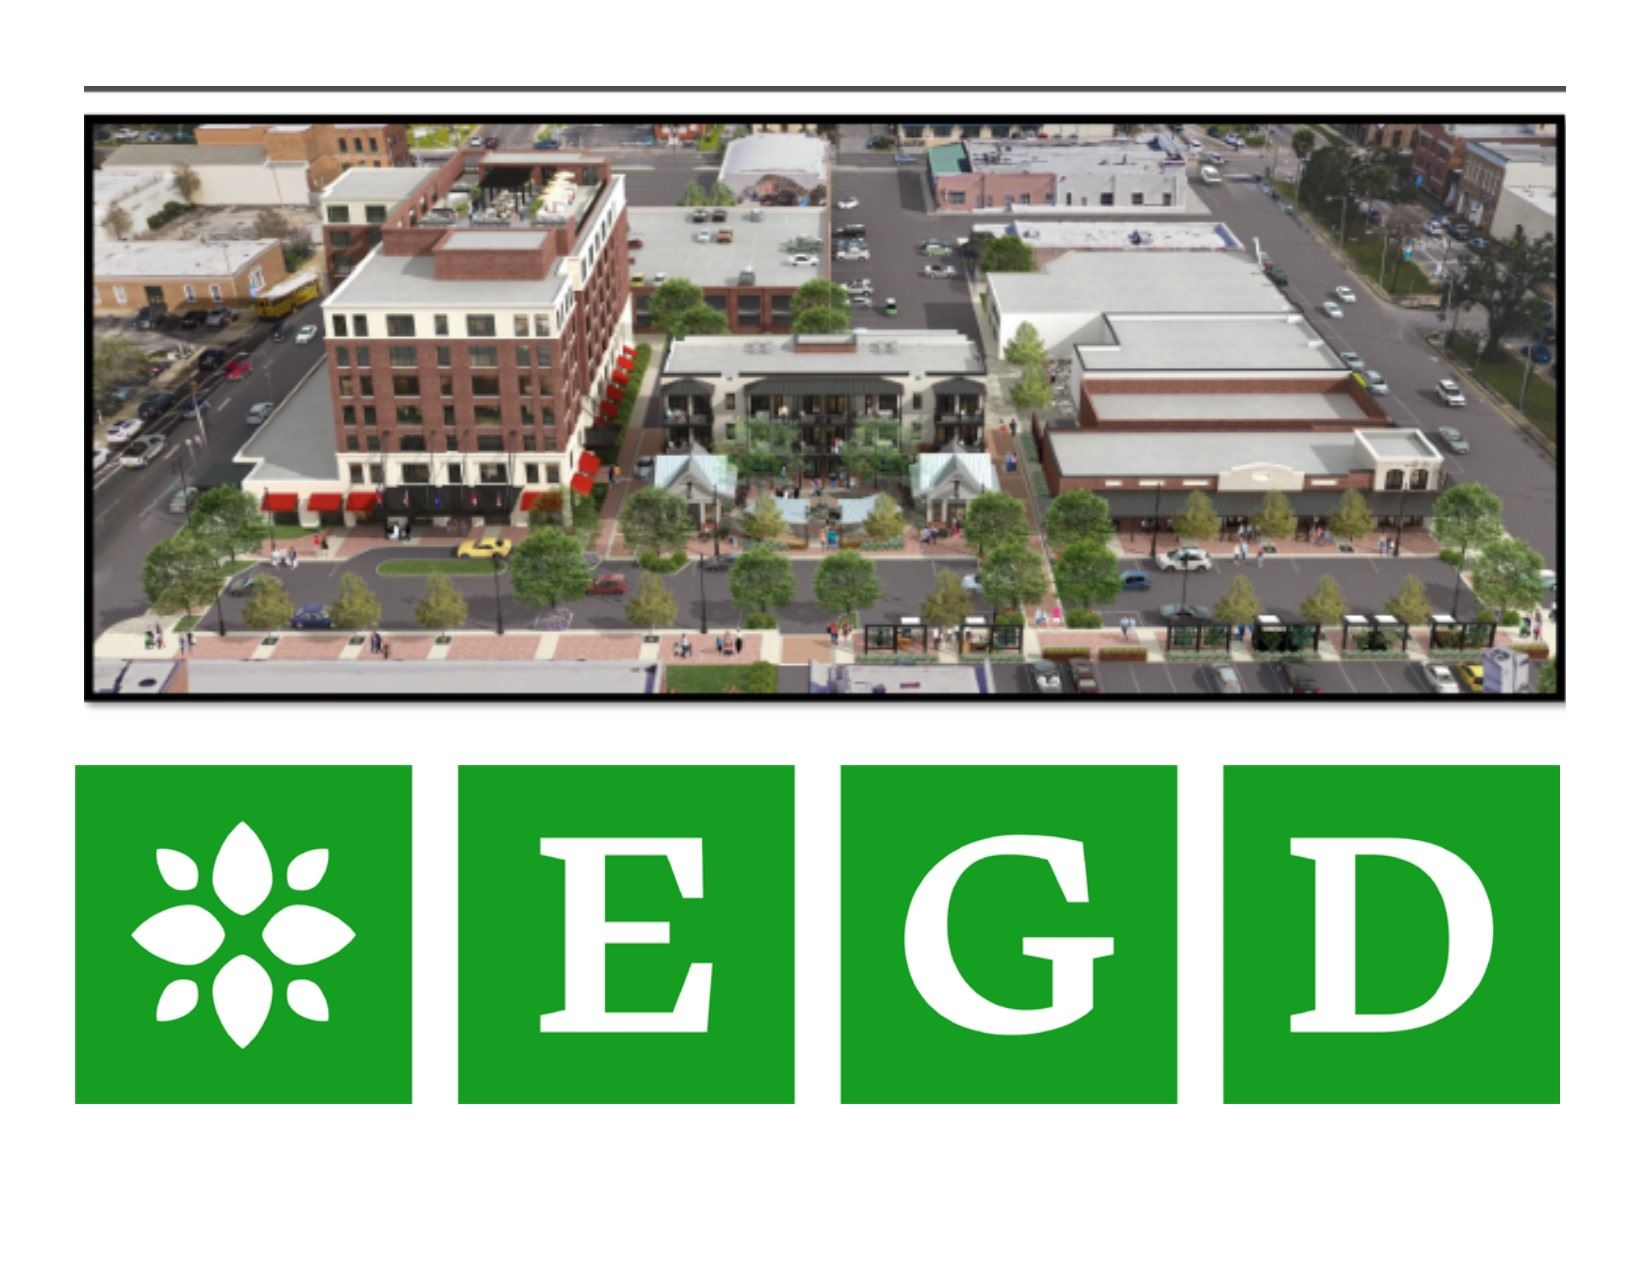 Conceptual rendering for East Garden District project